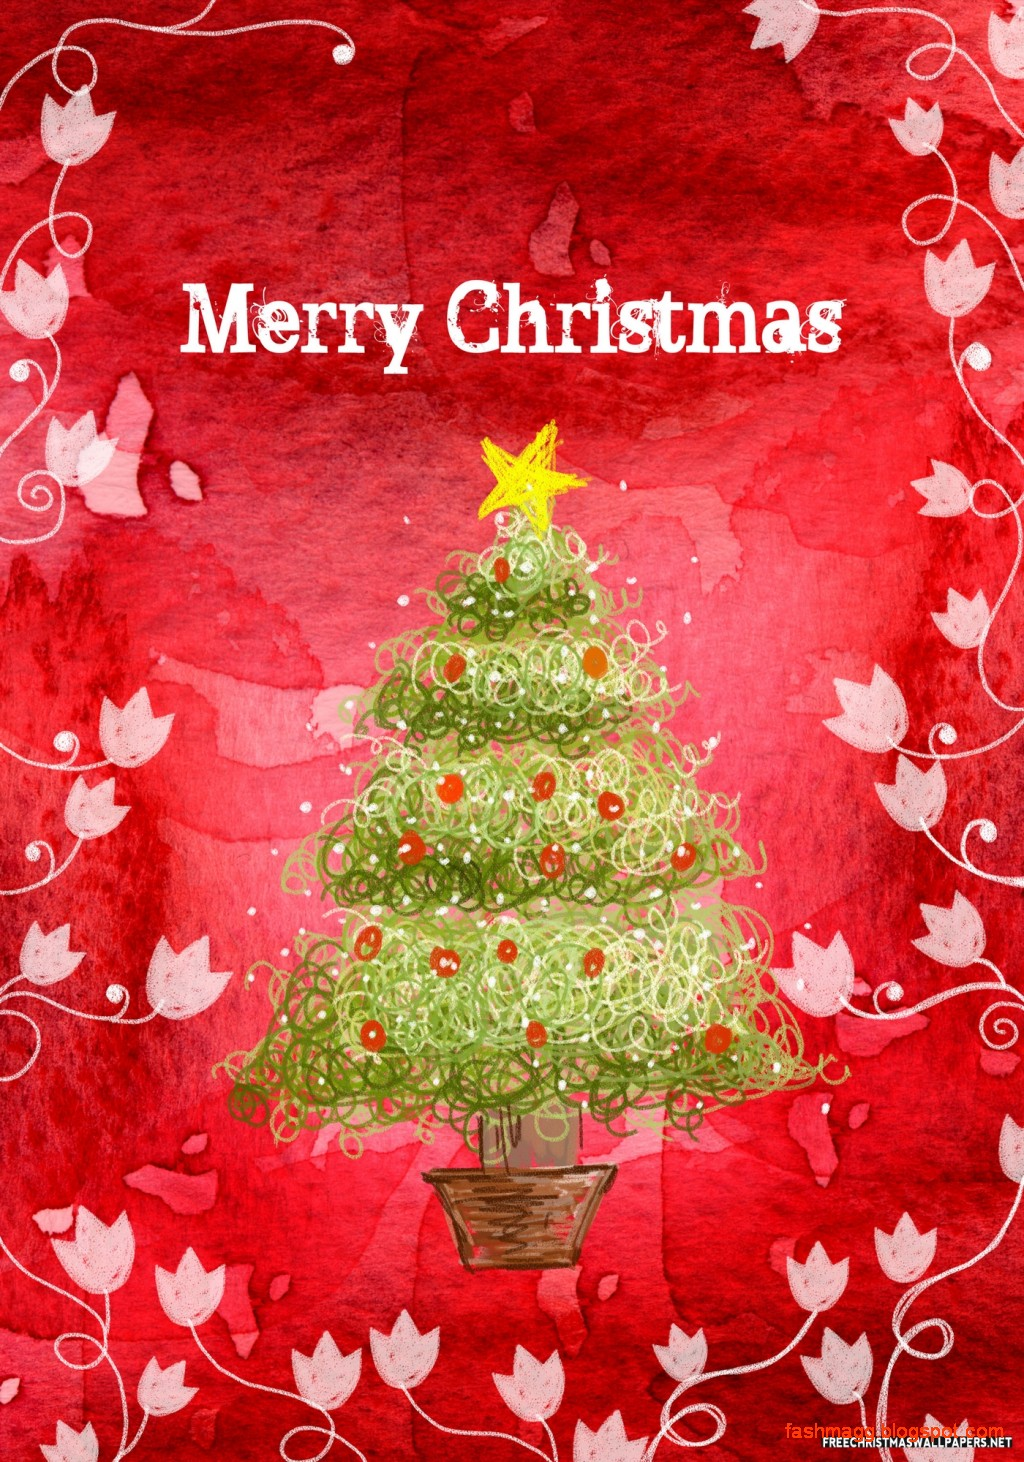 Merry Christmas X Mass Greeting E Cards Pictures Christmas